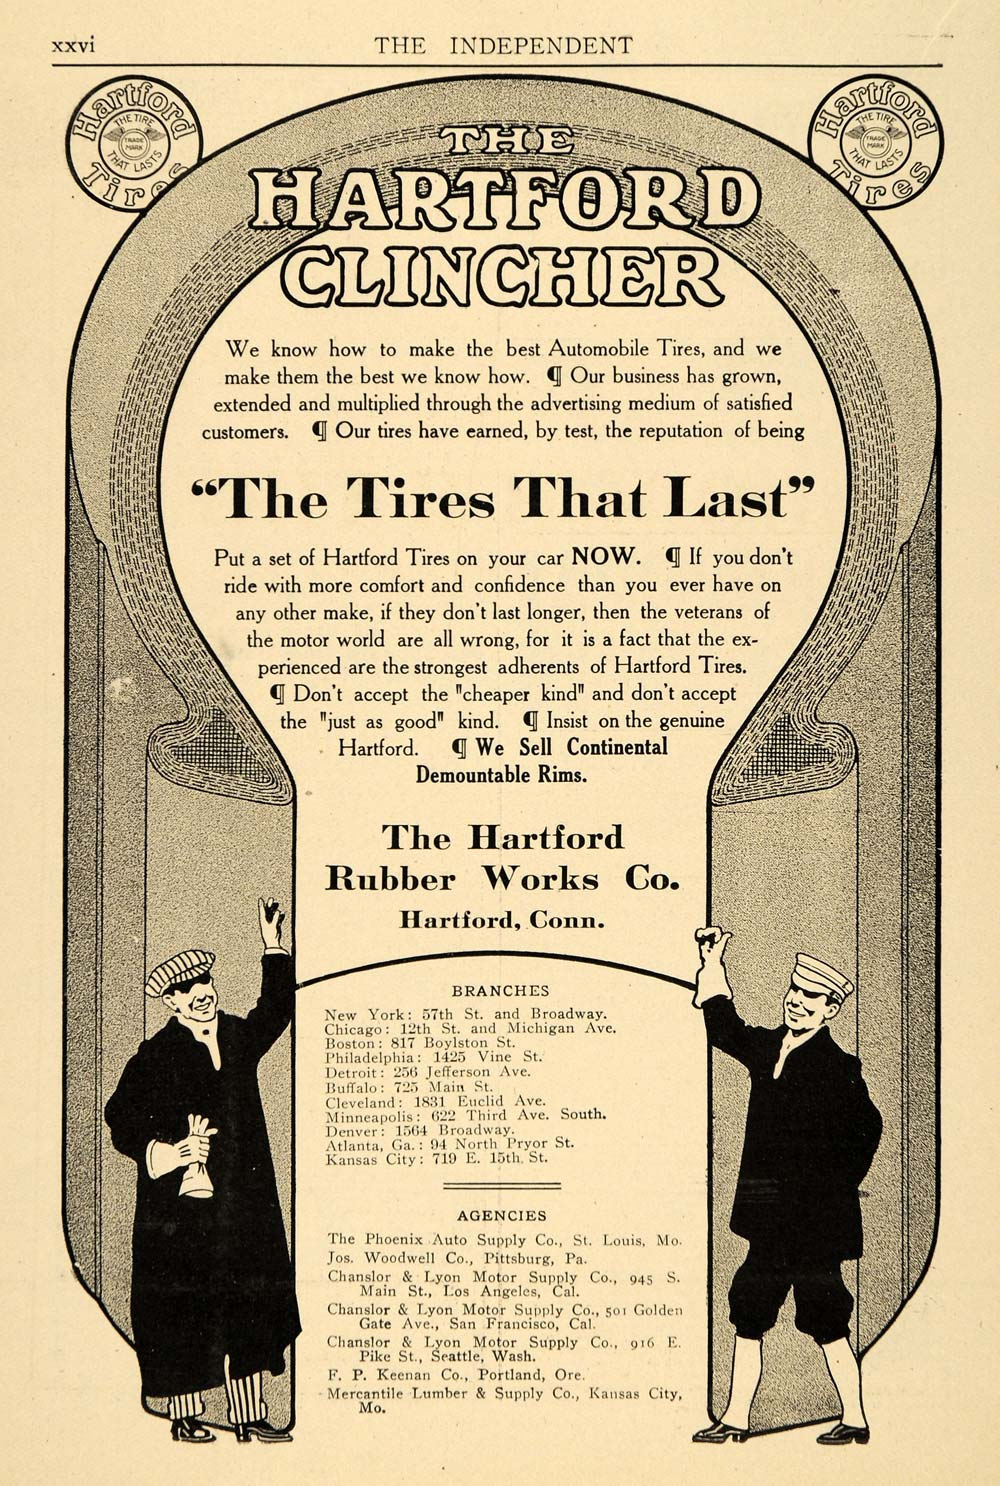 The Hartford At Work >> 1910 Ad Hartford Rubber Works Co Clincher Auto Tires Original